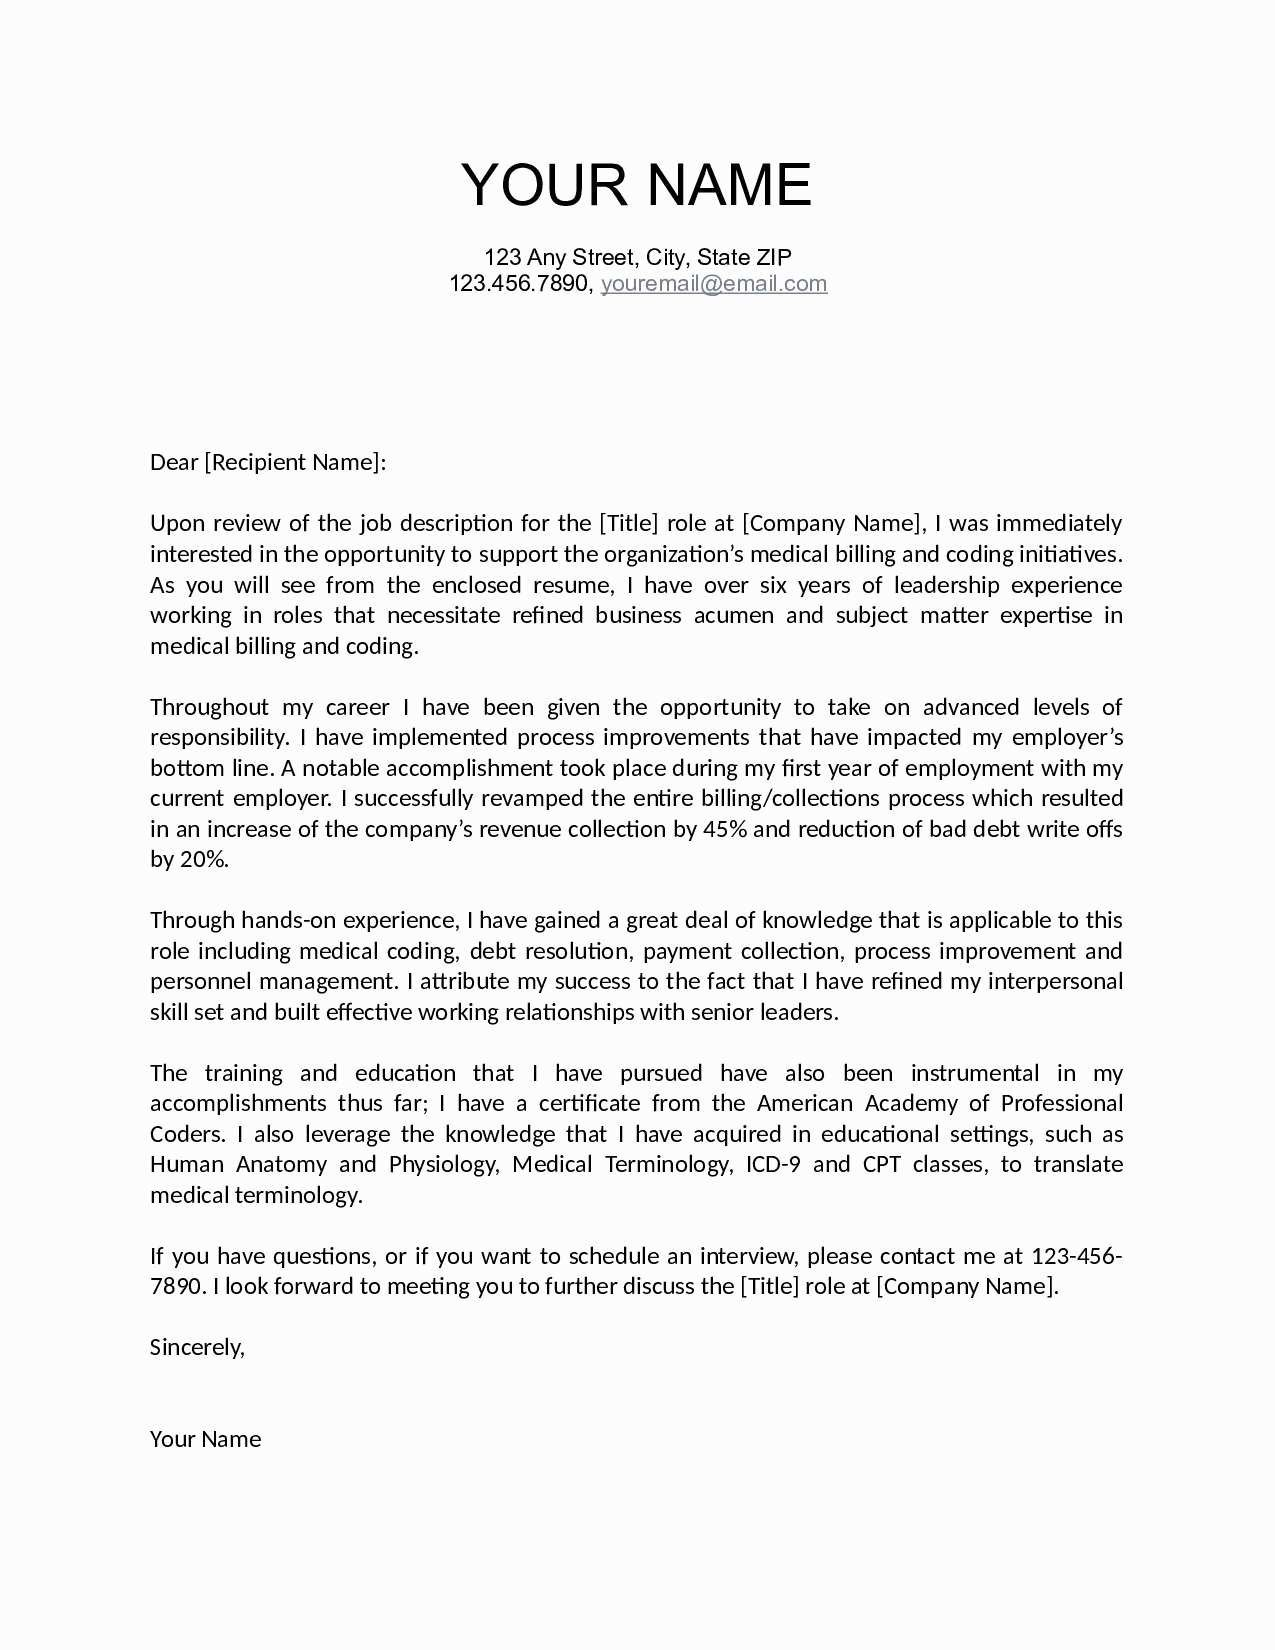 T format Cover Letter Template - Cover Letter format for Resume Template Valid Inspirational Job Fer